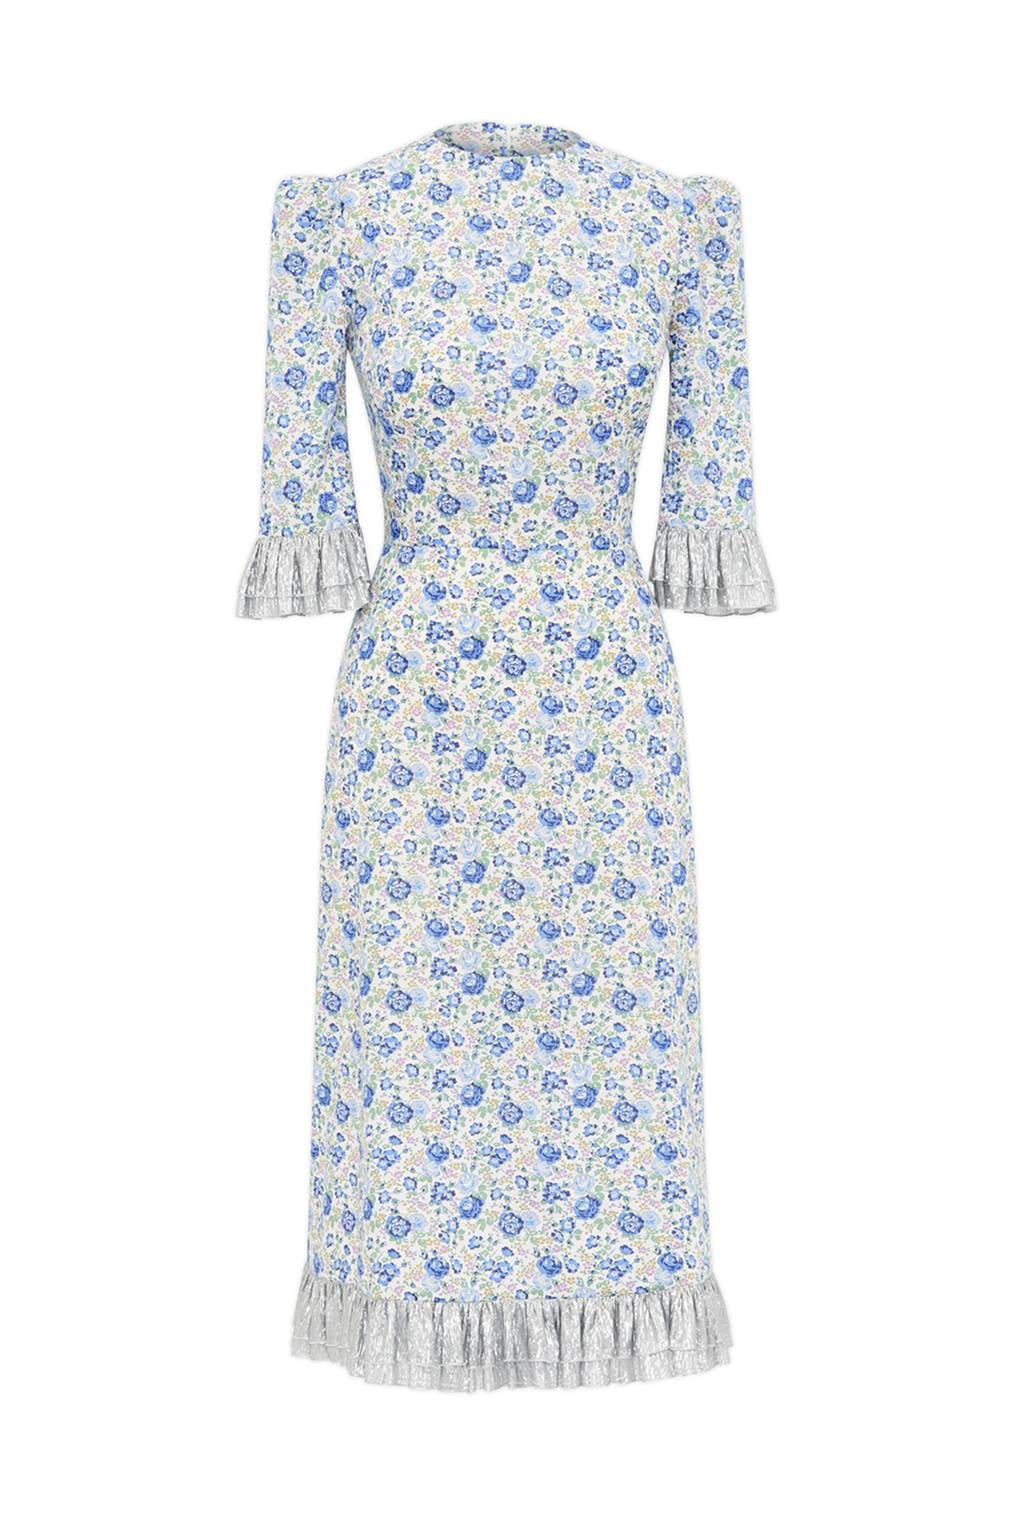 Spring Wedding Guest Dresses | What To Wear To A Spring Wedding ...